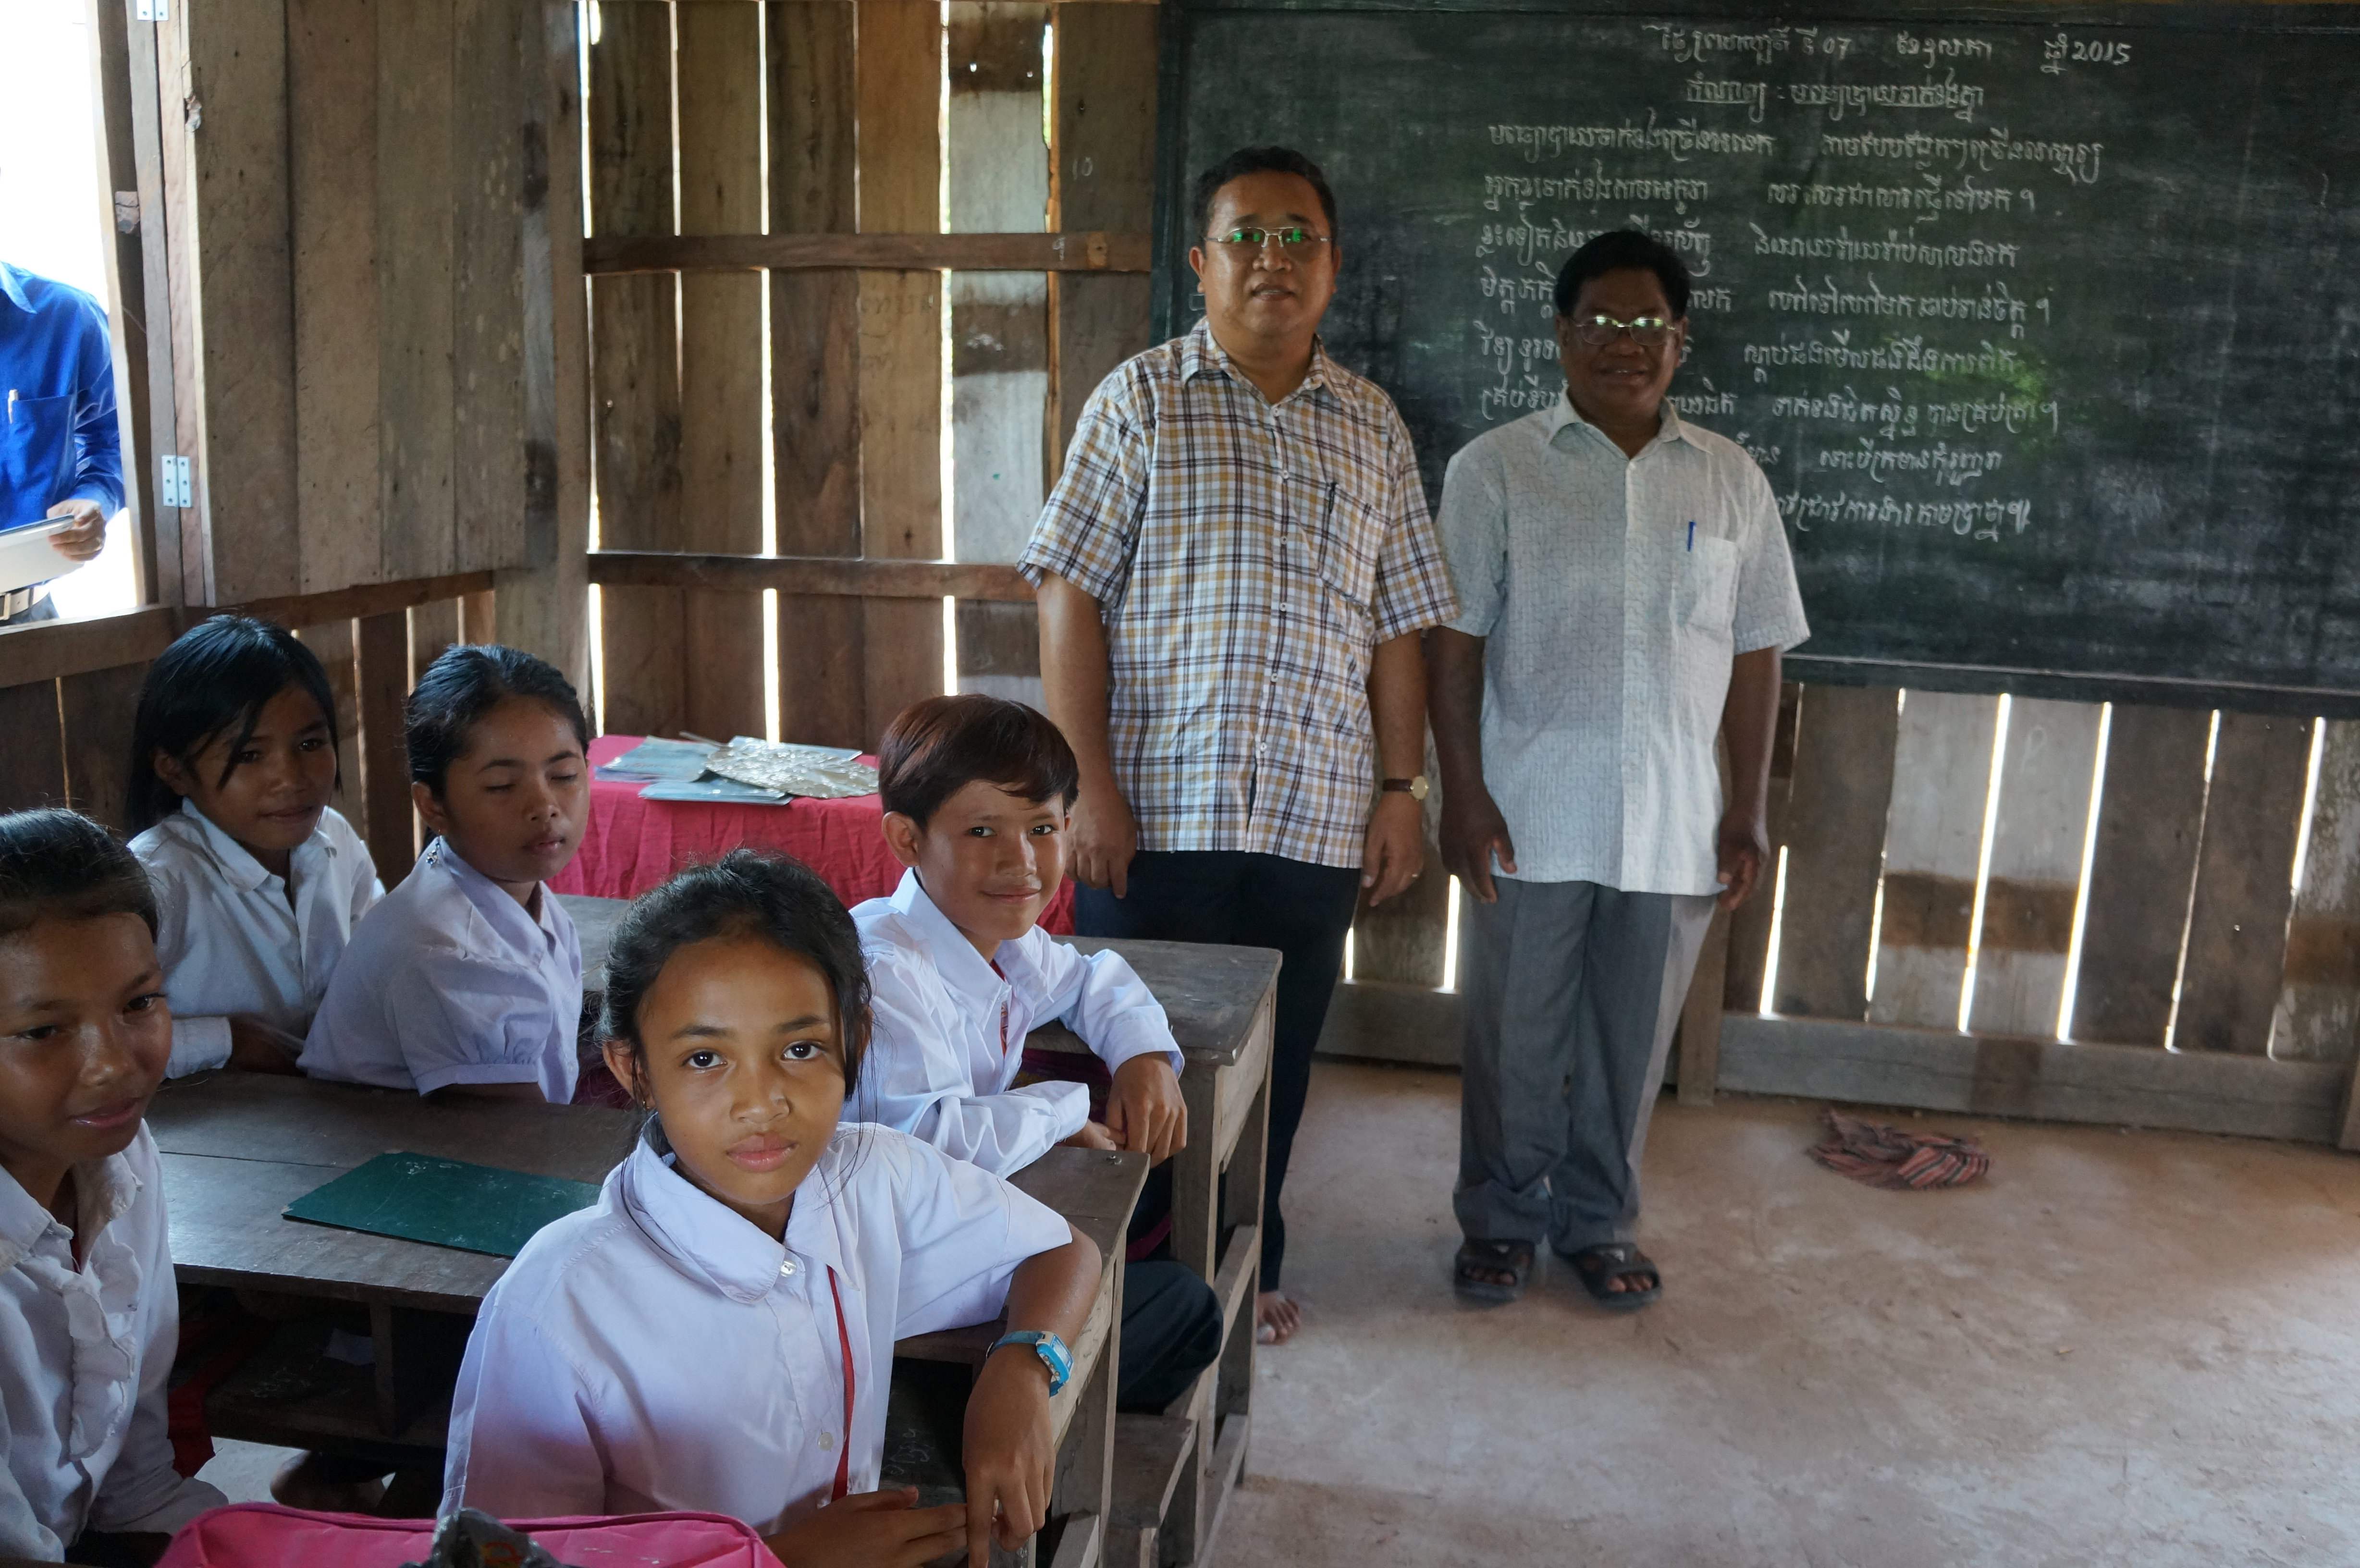 Mr. Sok Chan (right) and District Governor Chea Sambath, a strong advocate for the school, with the grade 4 students. ©UNICEF Cambodia/2015/Iman Morooka